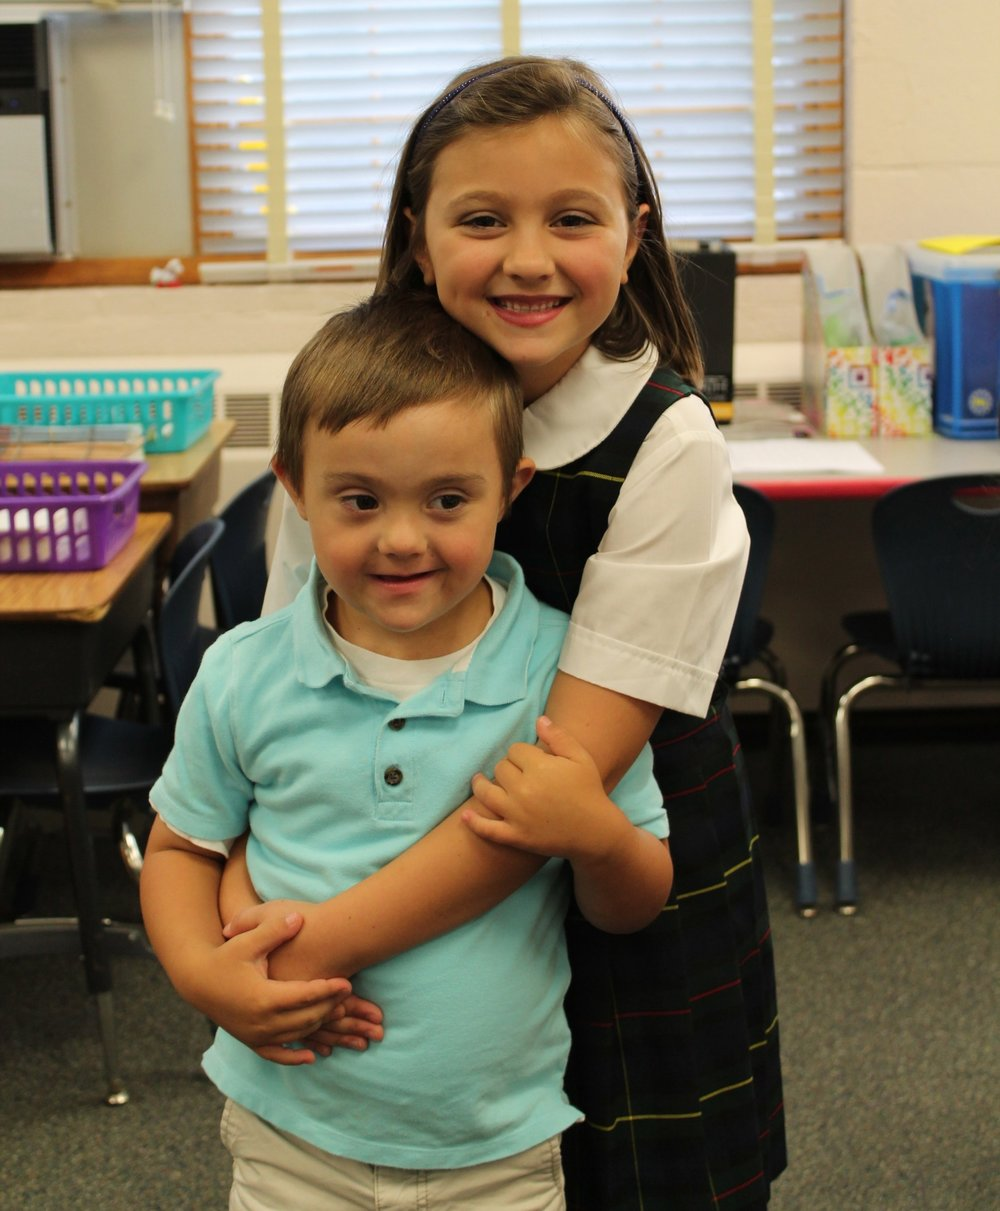 Tobin walked Zoe to class on her first day of second grade